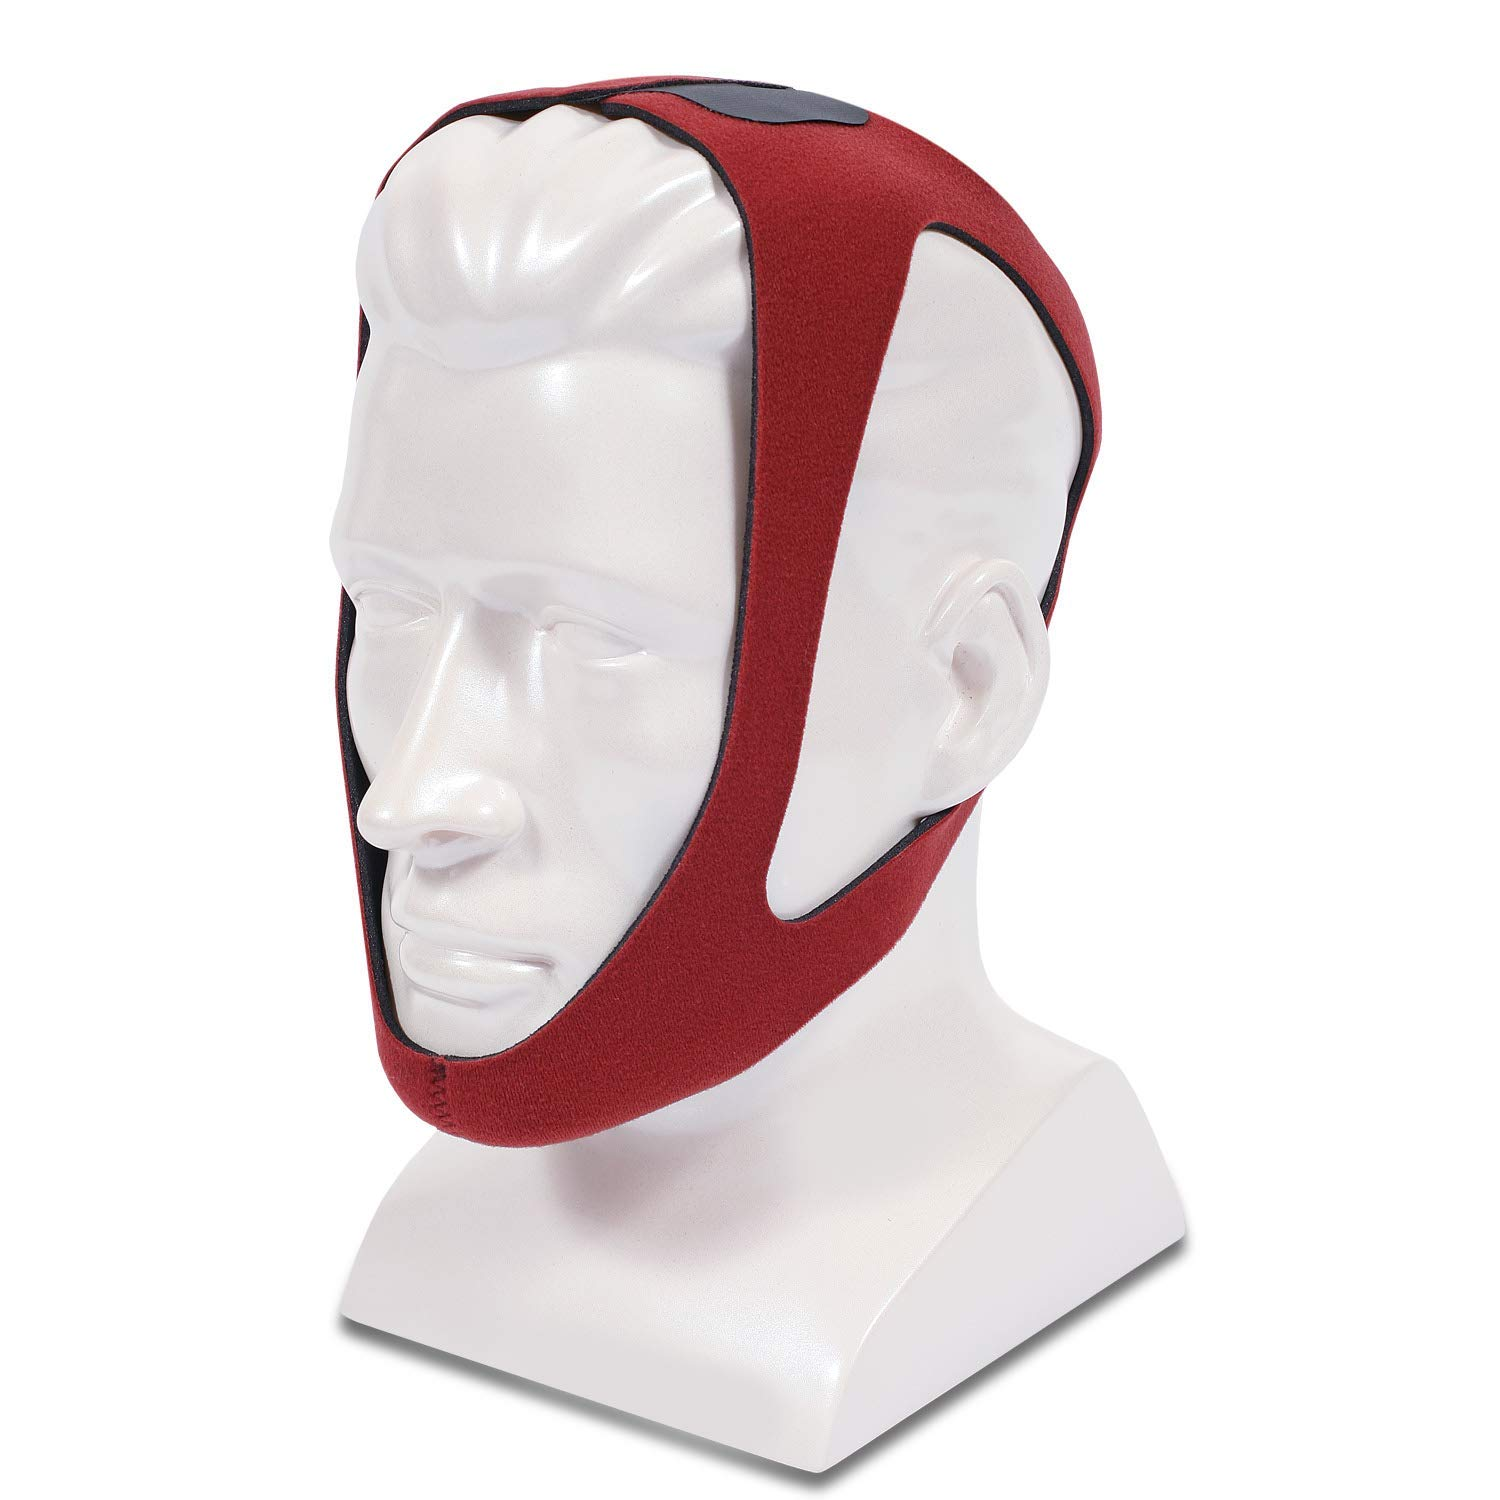 Sunset Ruby Style Chin Strap, Medium Part No. Cs007m (1/ea)